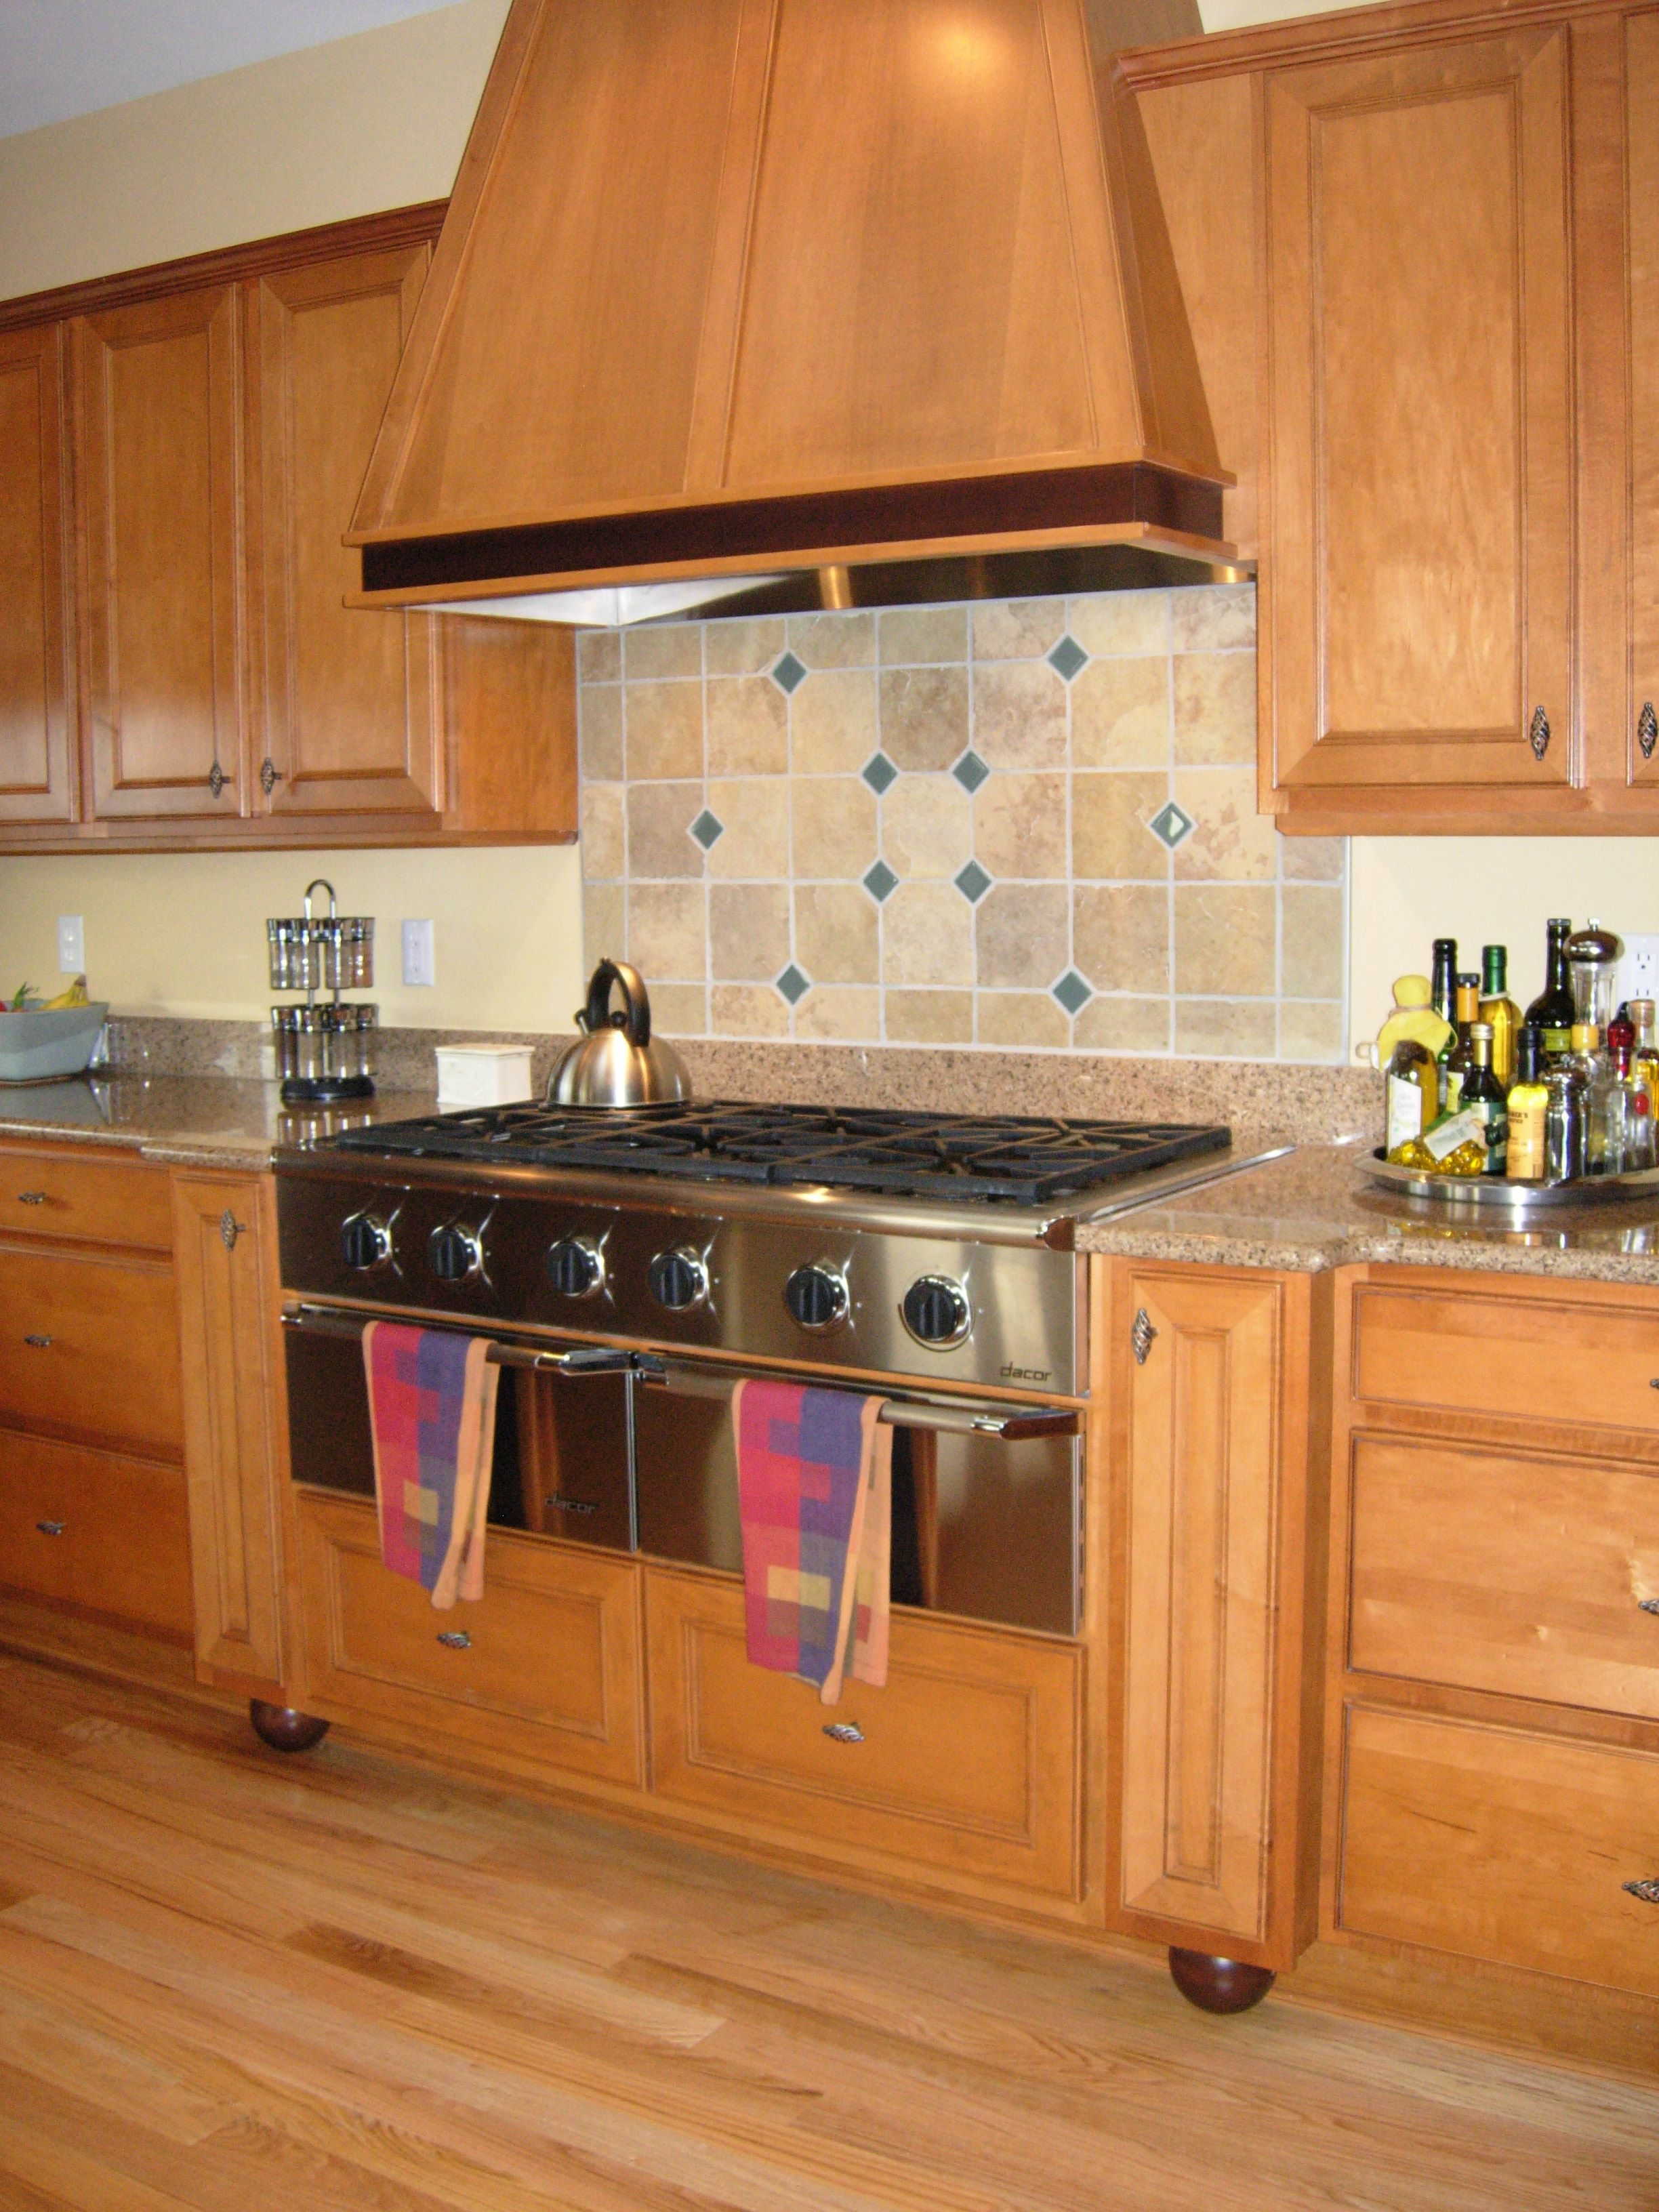 A Builder Grade Cabinet Upgraded With The Addition Of Matching Custom Range Top And Wood Hood